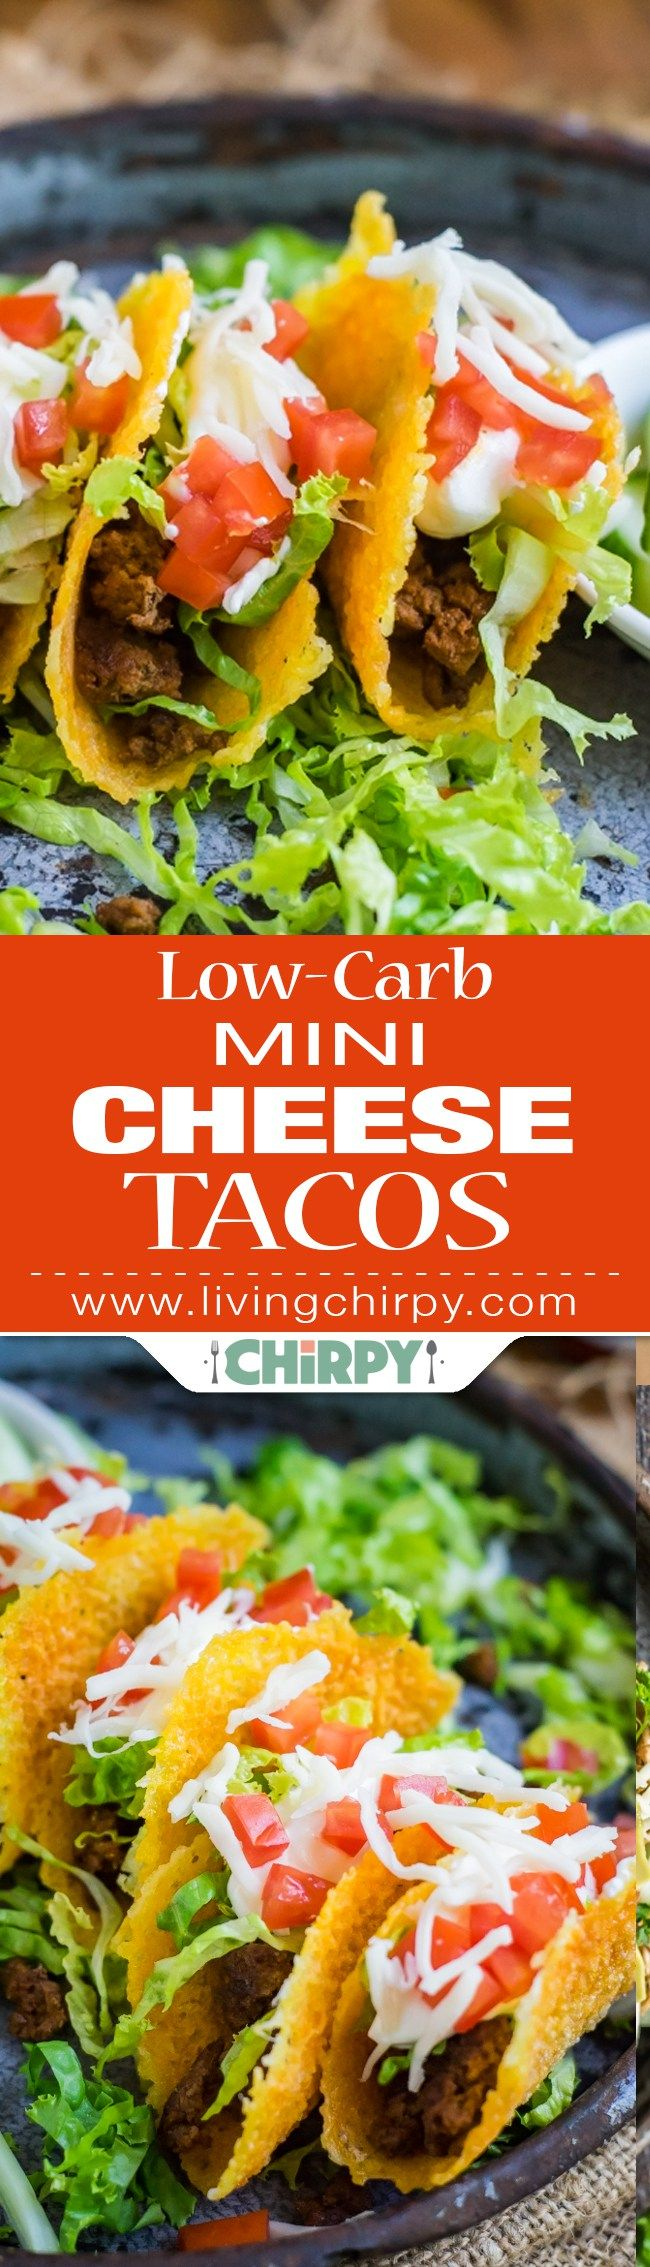 Low-Carb Mini Cheese Tacos - a low-carb taco shell made with melted cheese and filled with ground beef, lettuce, tomato and sour cream.